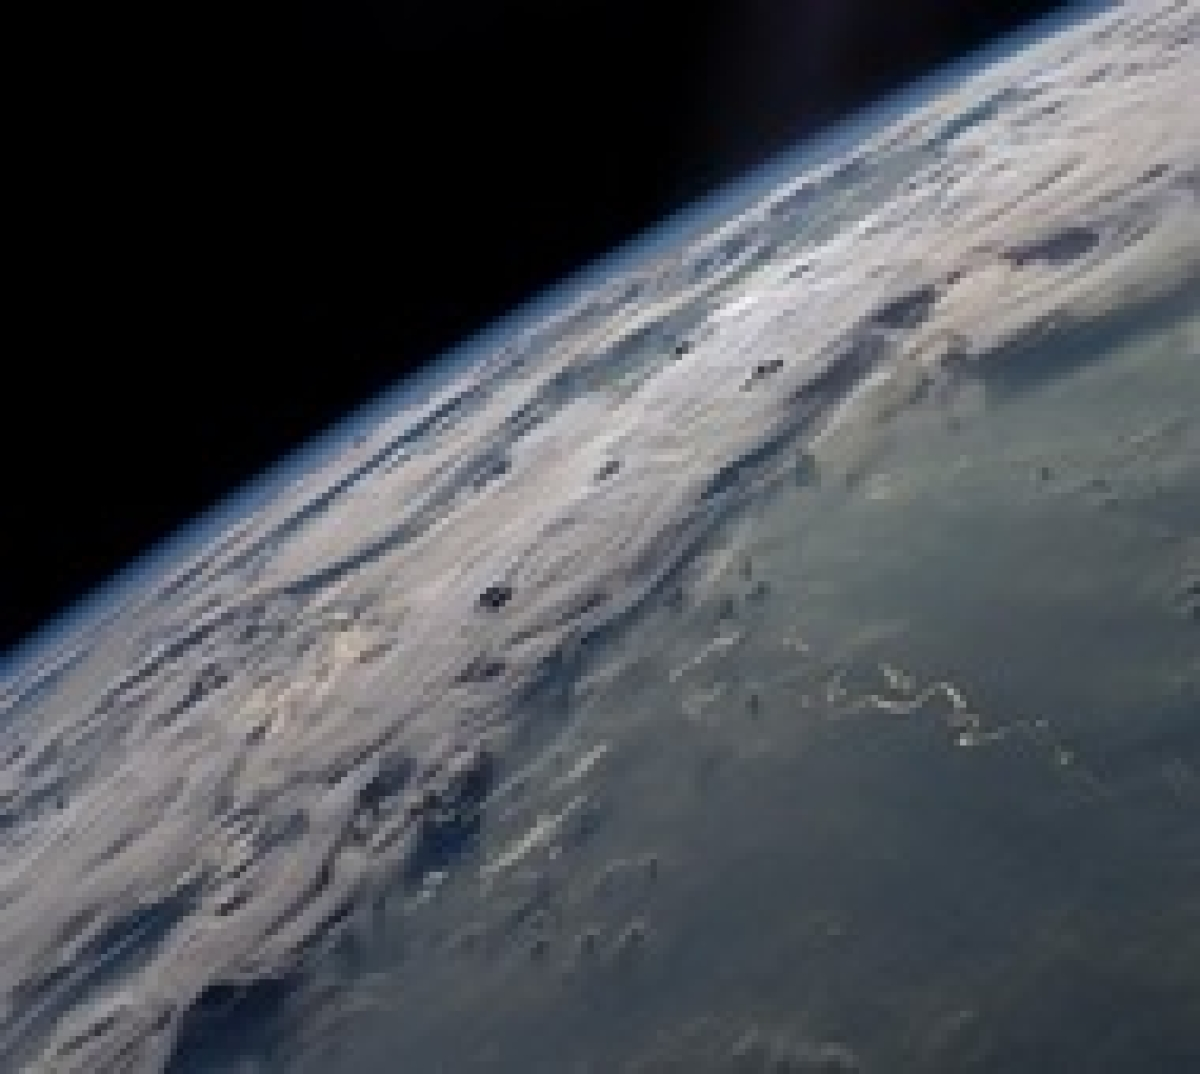 Earth collided with Mercury-like planet to give birth to carbon